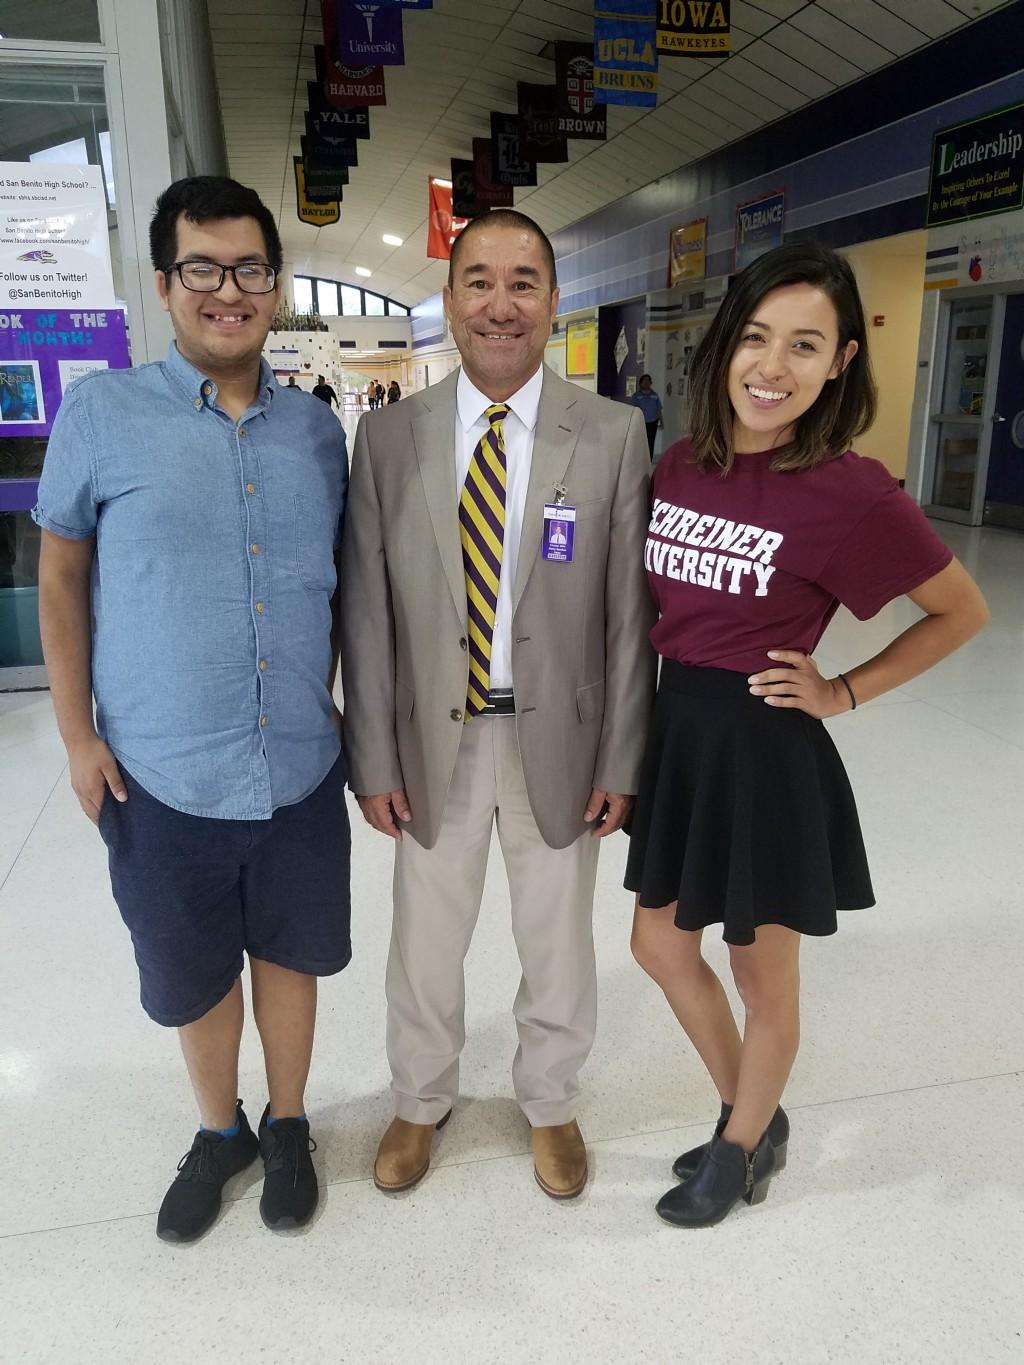 Mr. Sanchez, Principal, posing with students.